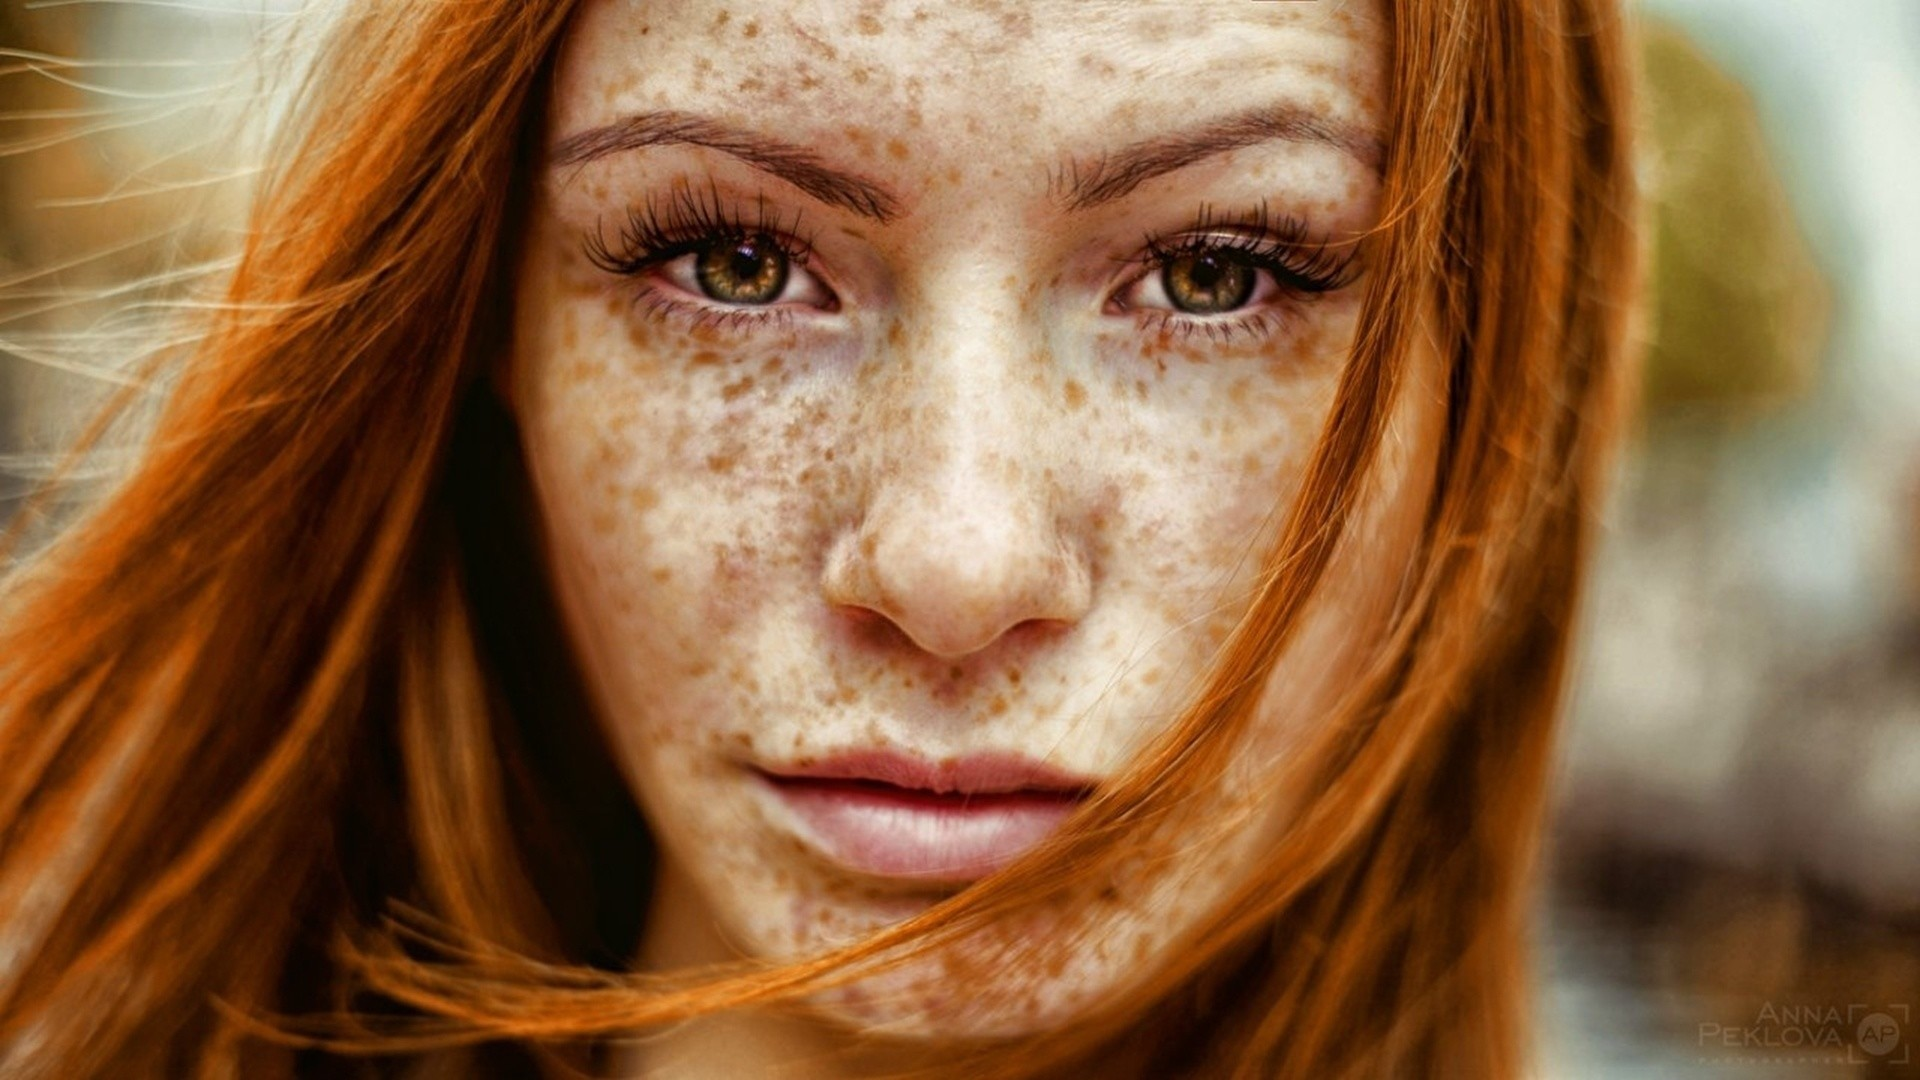 Freckled girl wallpapers and images